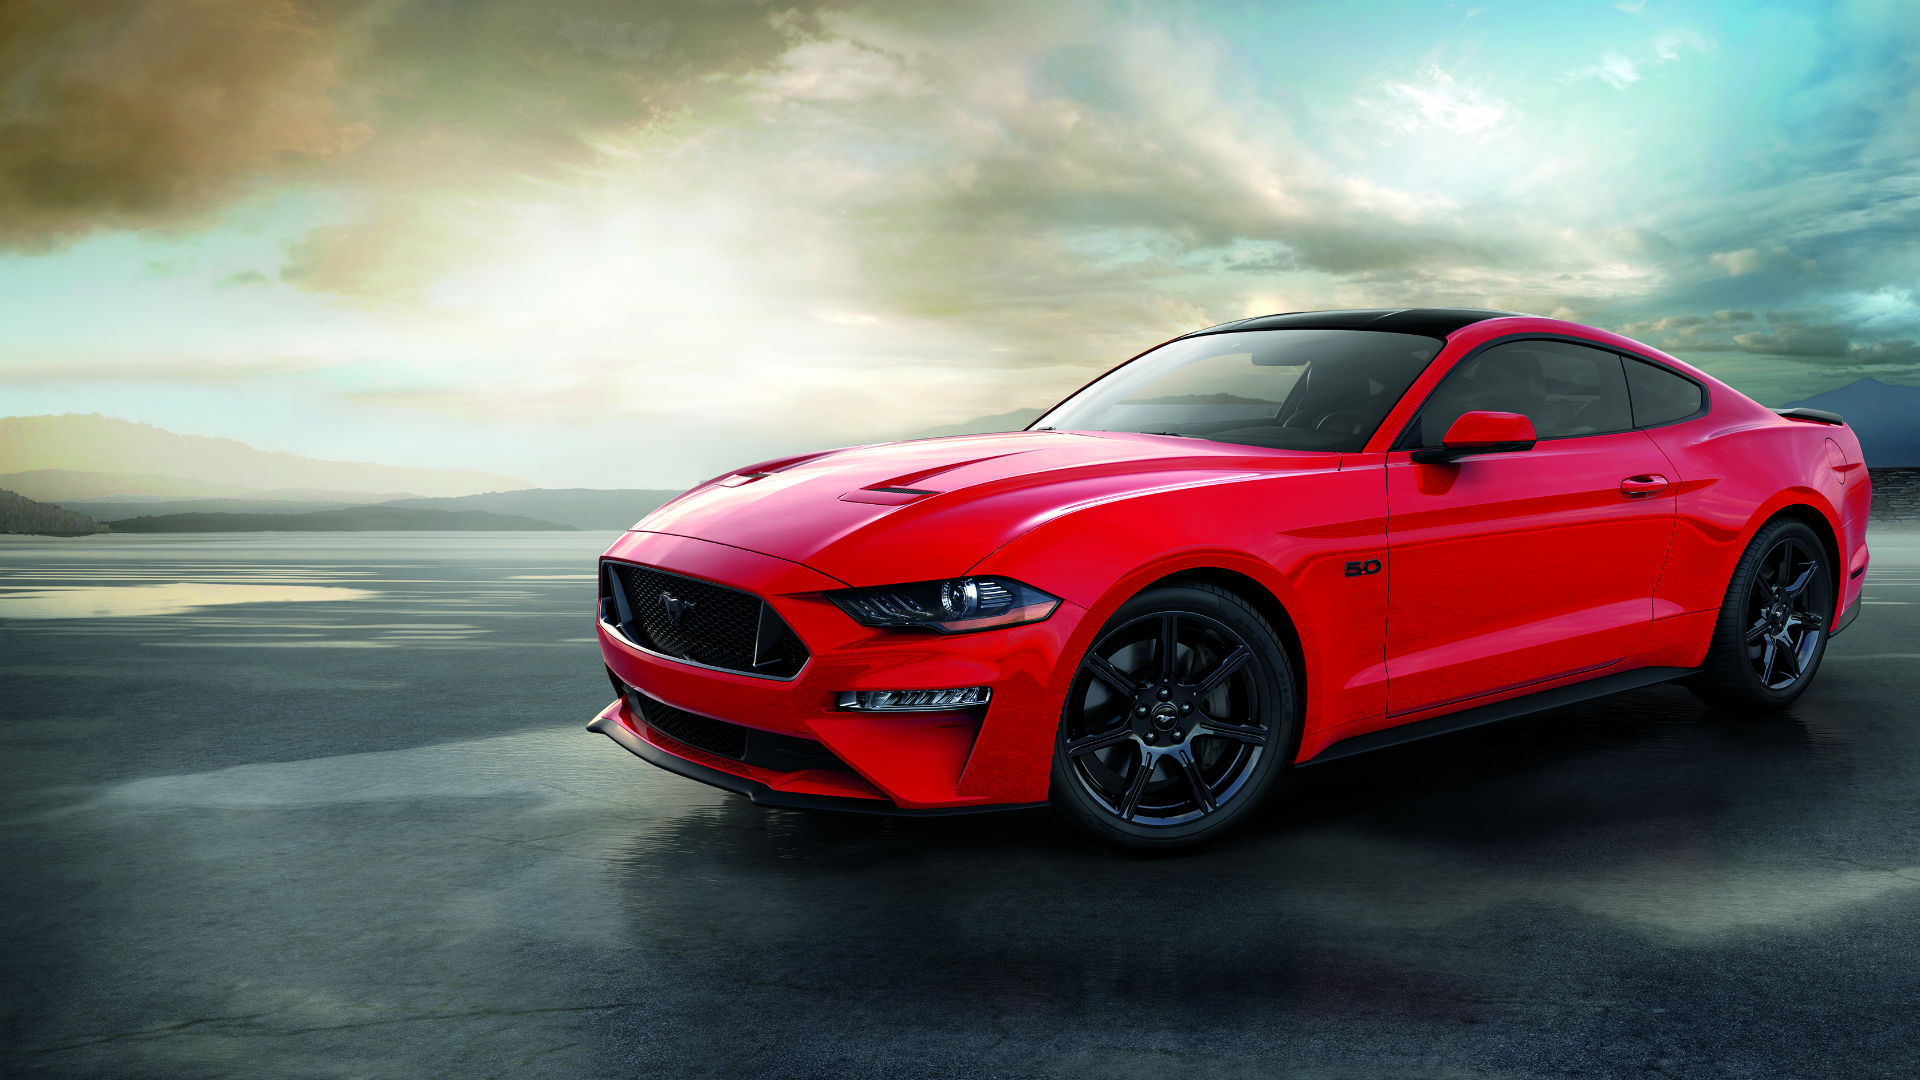 2018-ford-mustang-gt-red.jpg